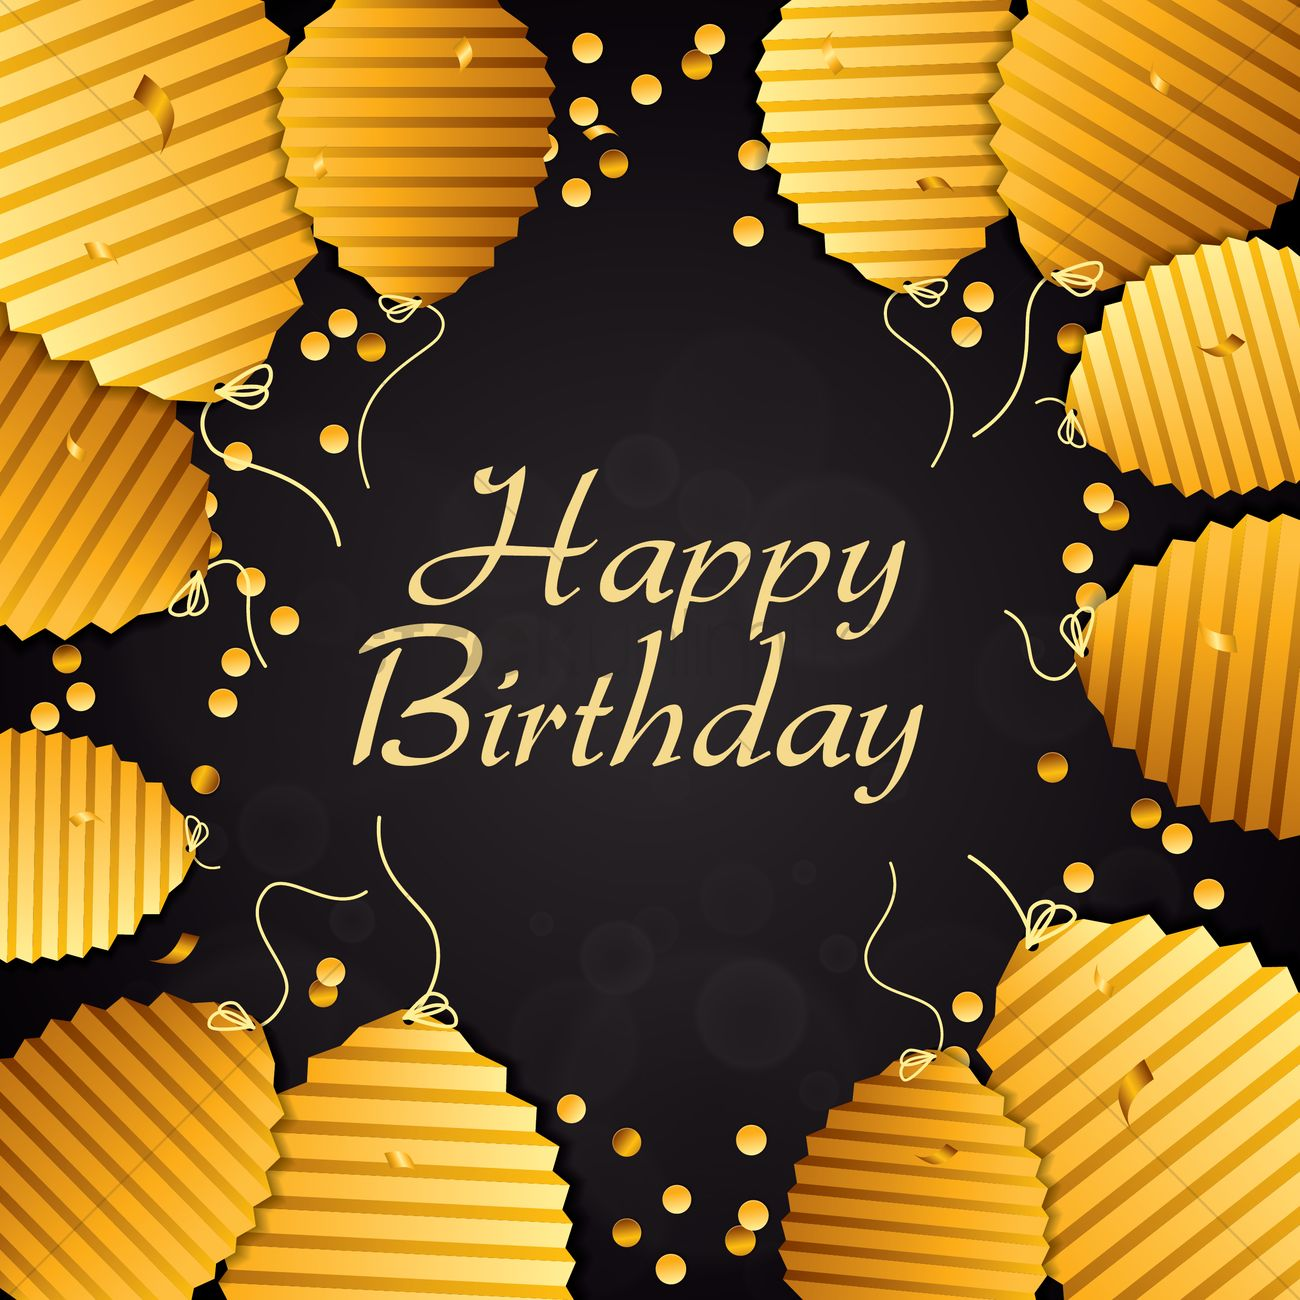 Happy Birthday With Classy Concept Vector Image 1934694 Stockunlimited